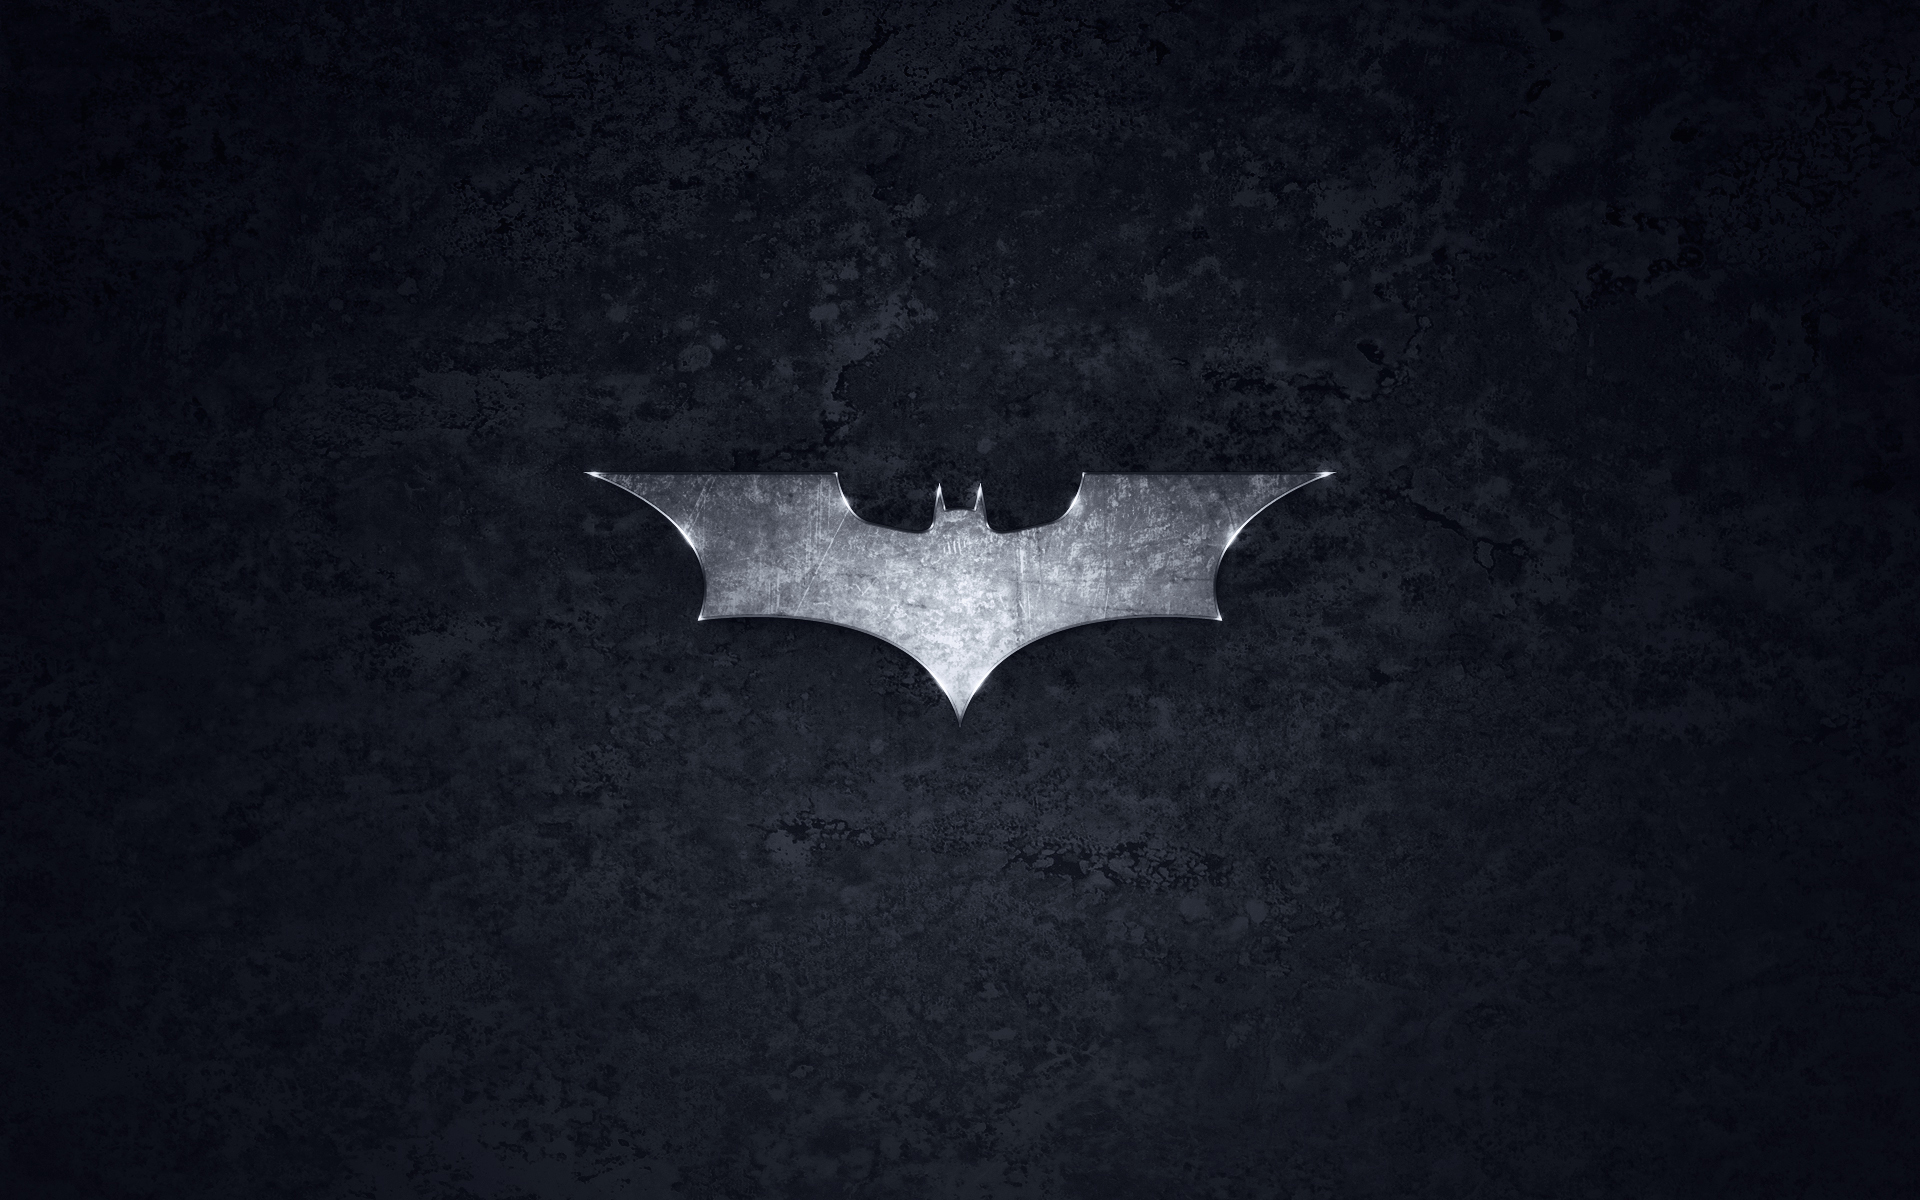 Wallpapers-room_com___The_Dark_Knight_by_LouieMantia_1920x1200